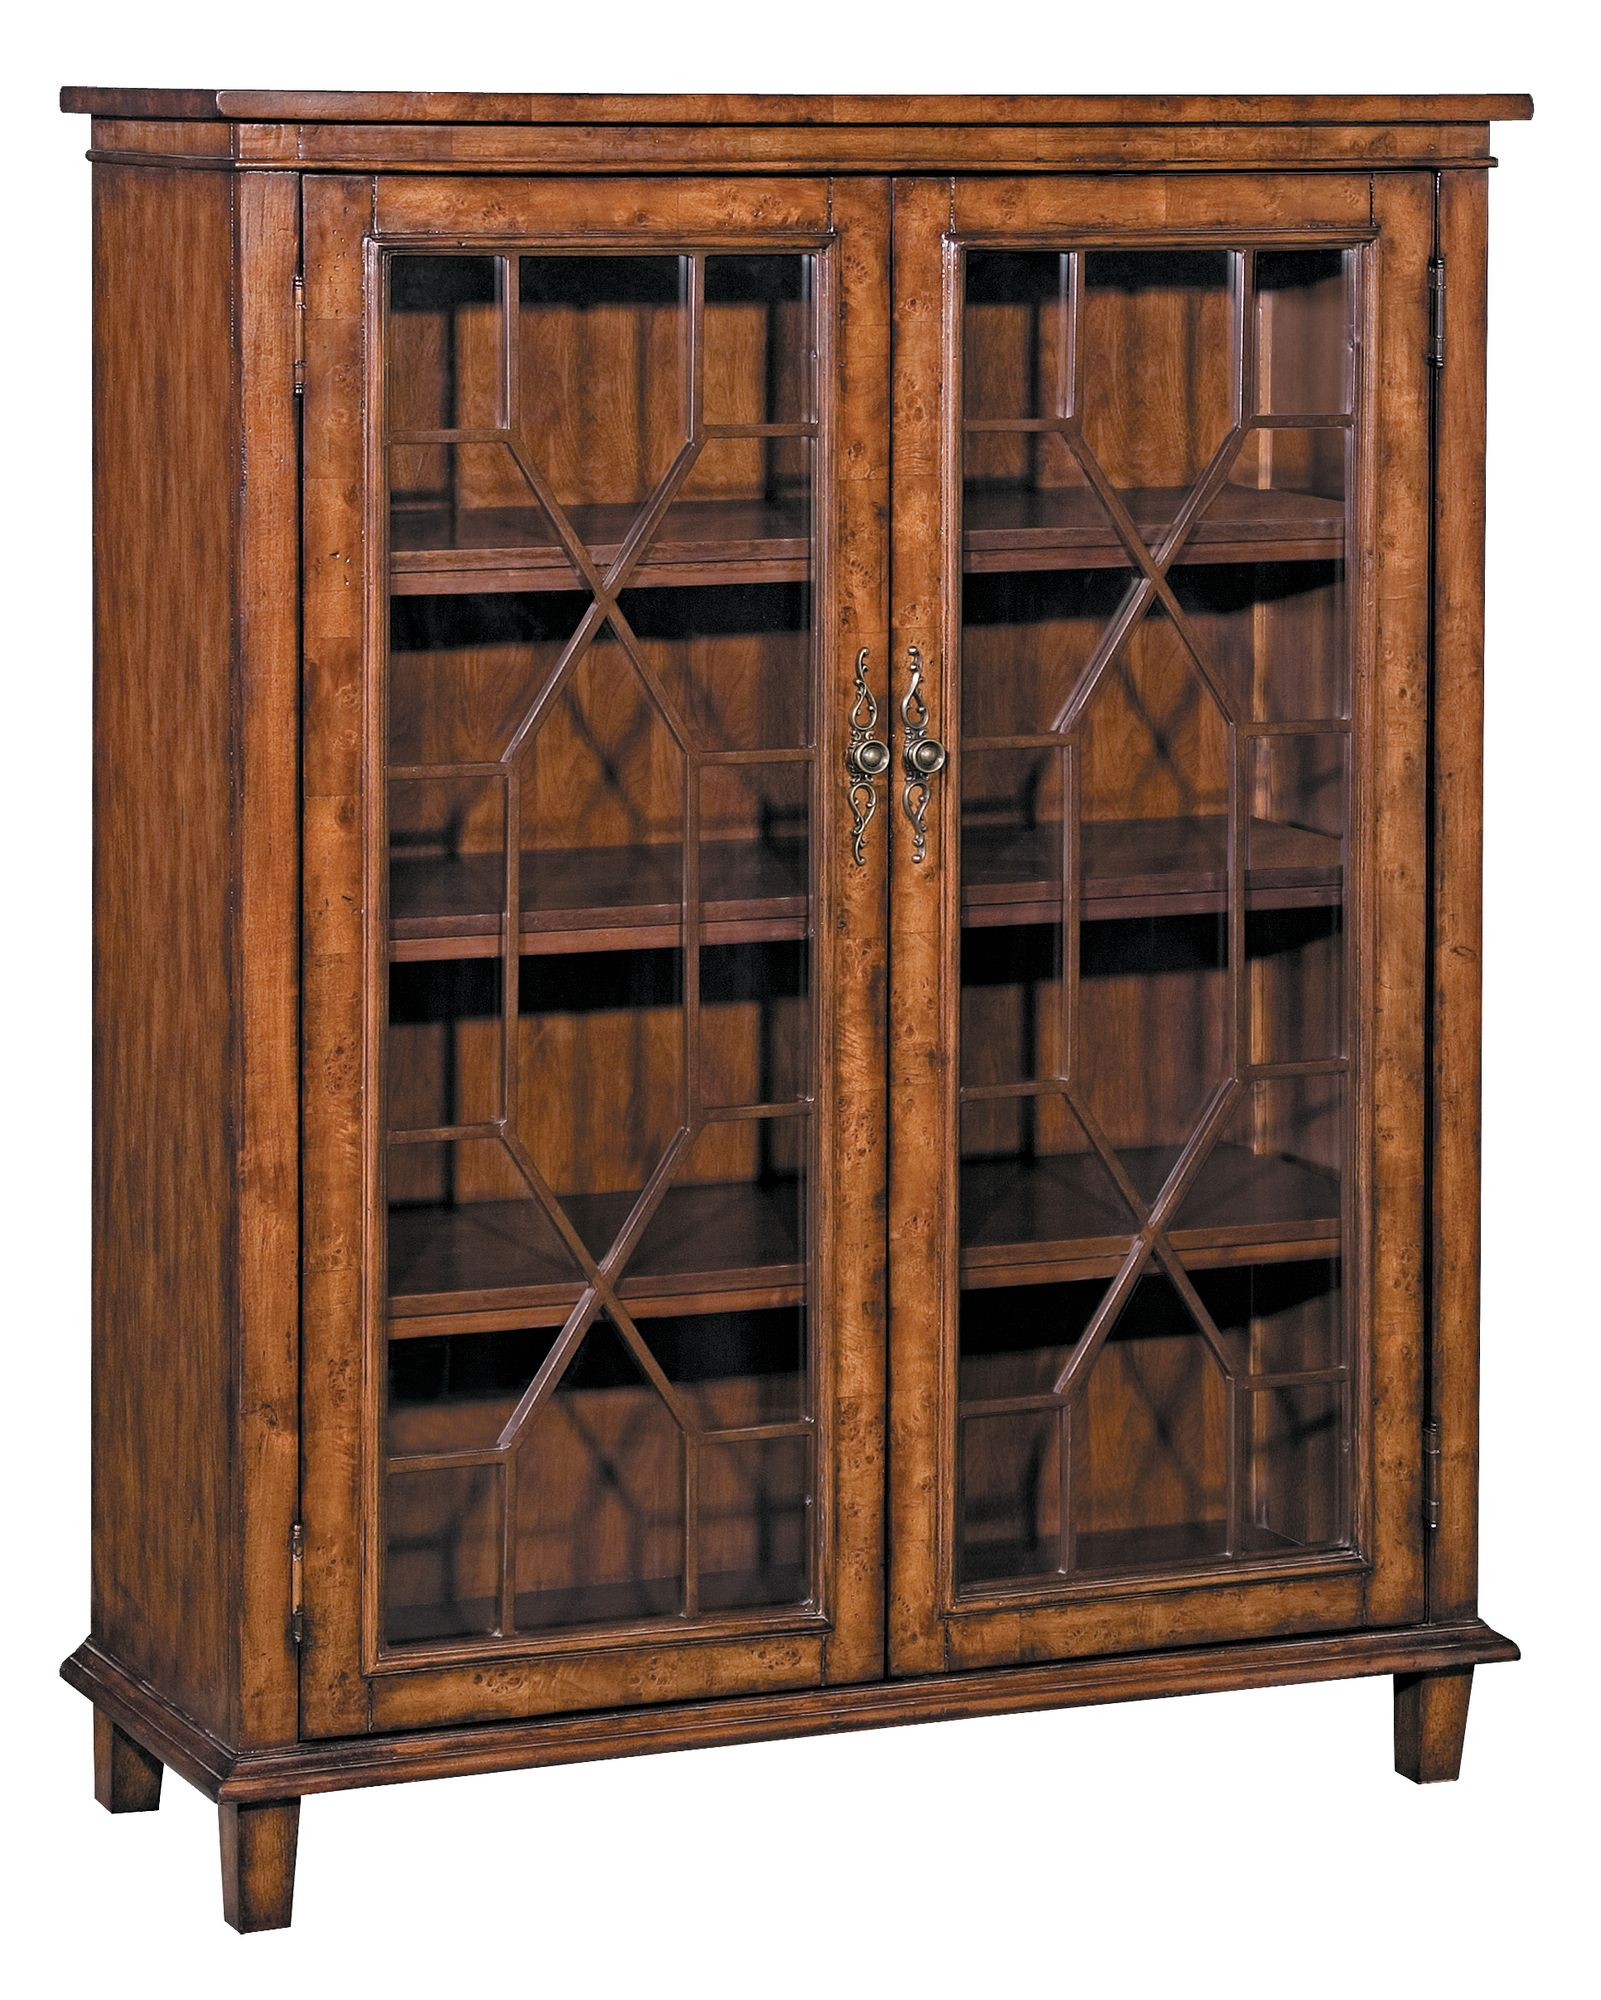 Chippendale standard bookcase house two door bookcase with burl inlay and latticework panels product bookcase construction material wood wood veneers burl wood and glass color warm planetlyrics Image collections